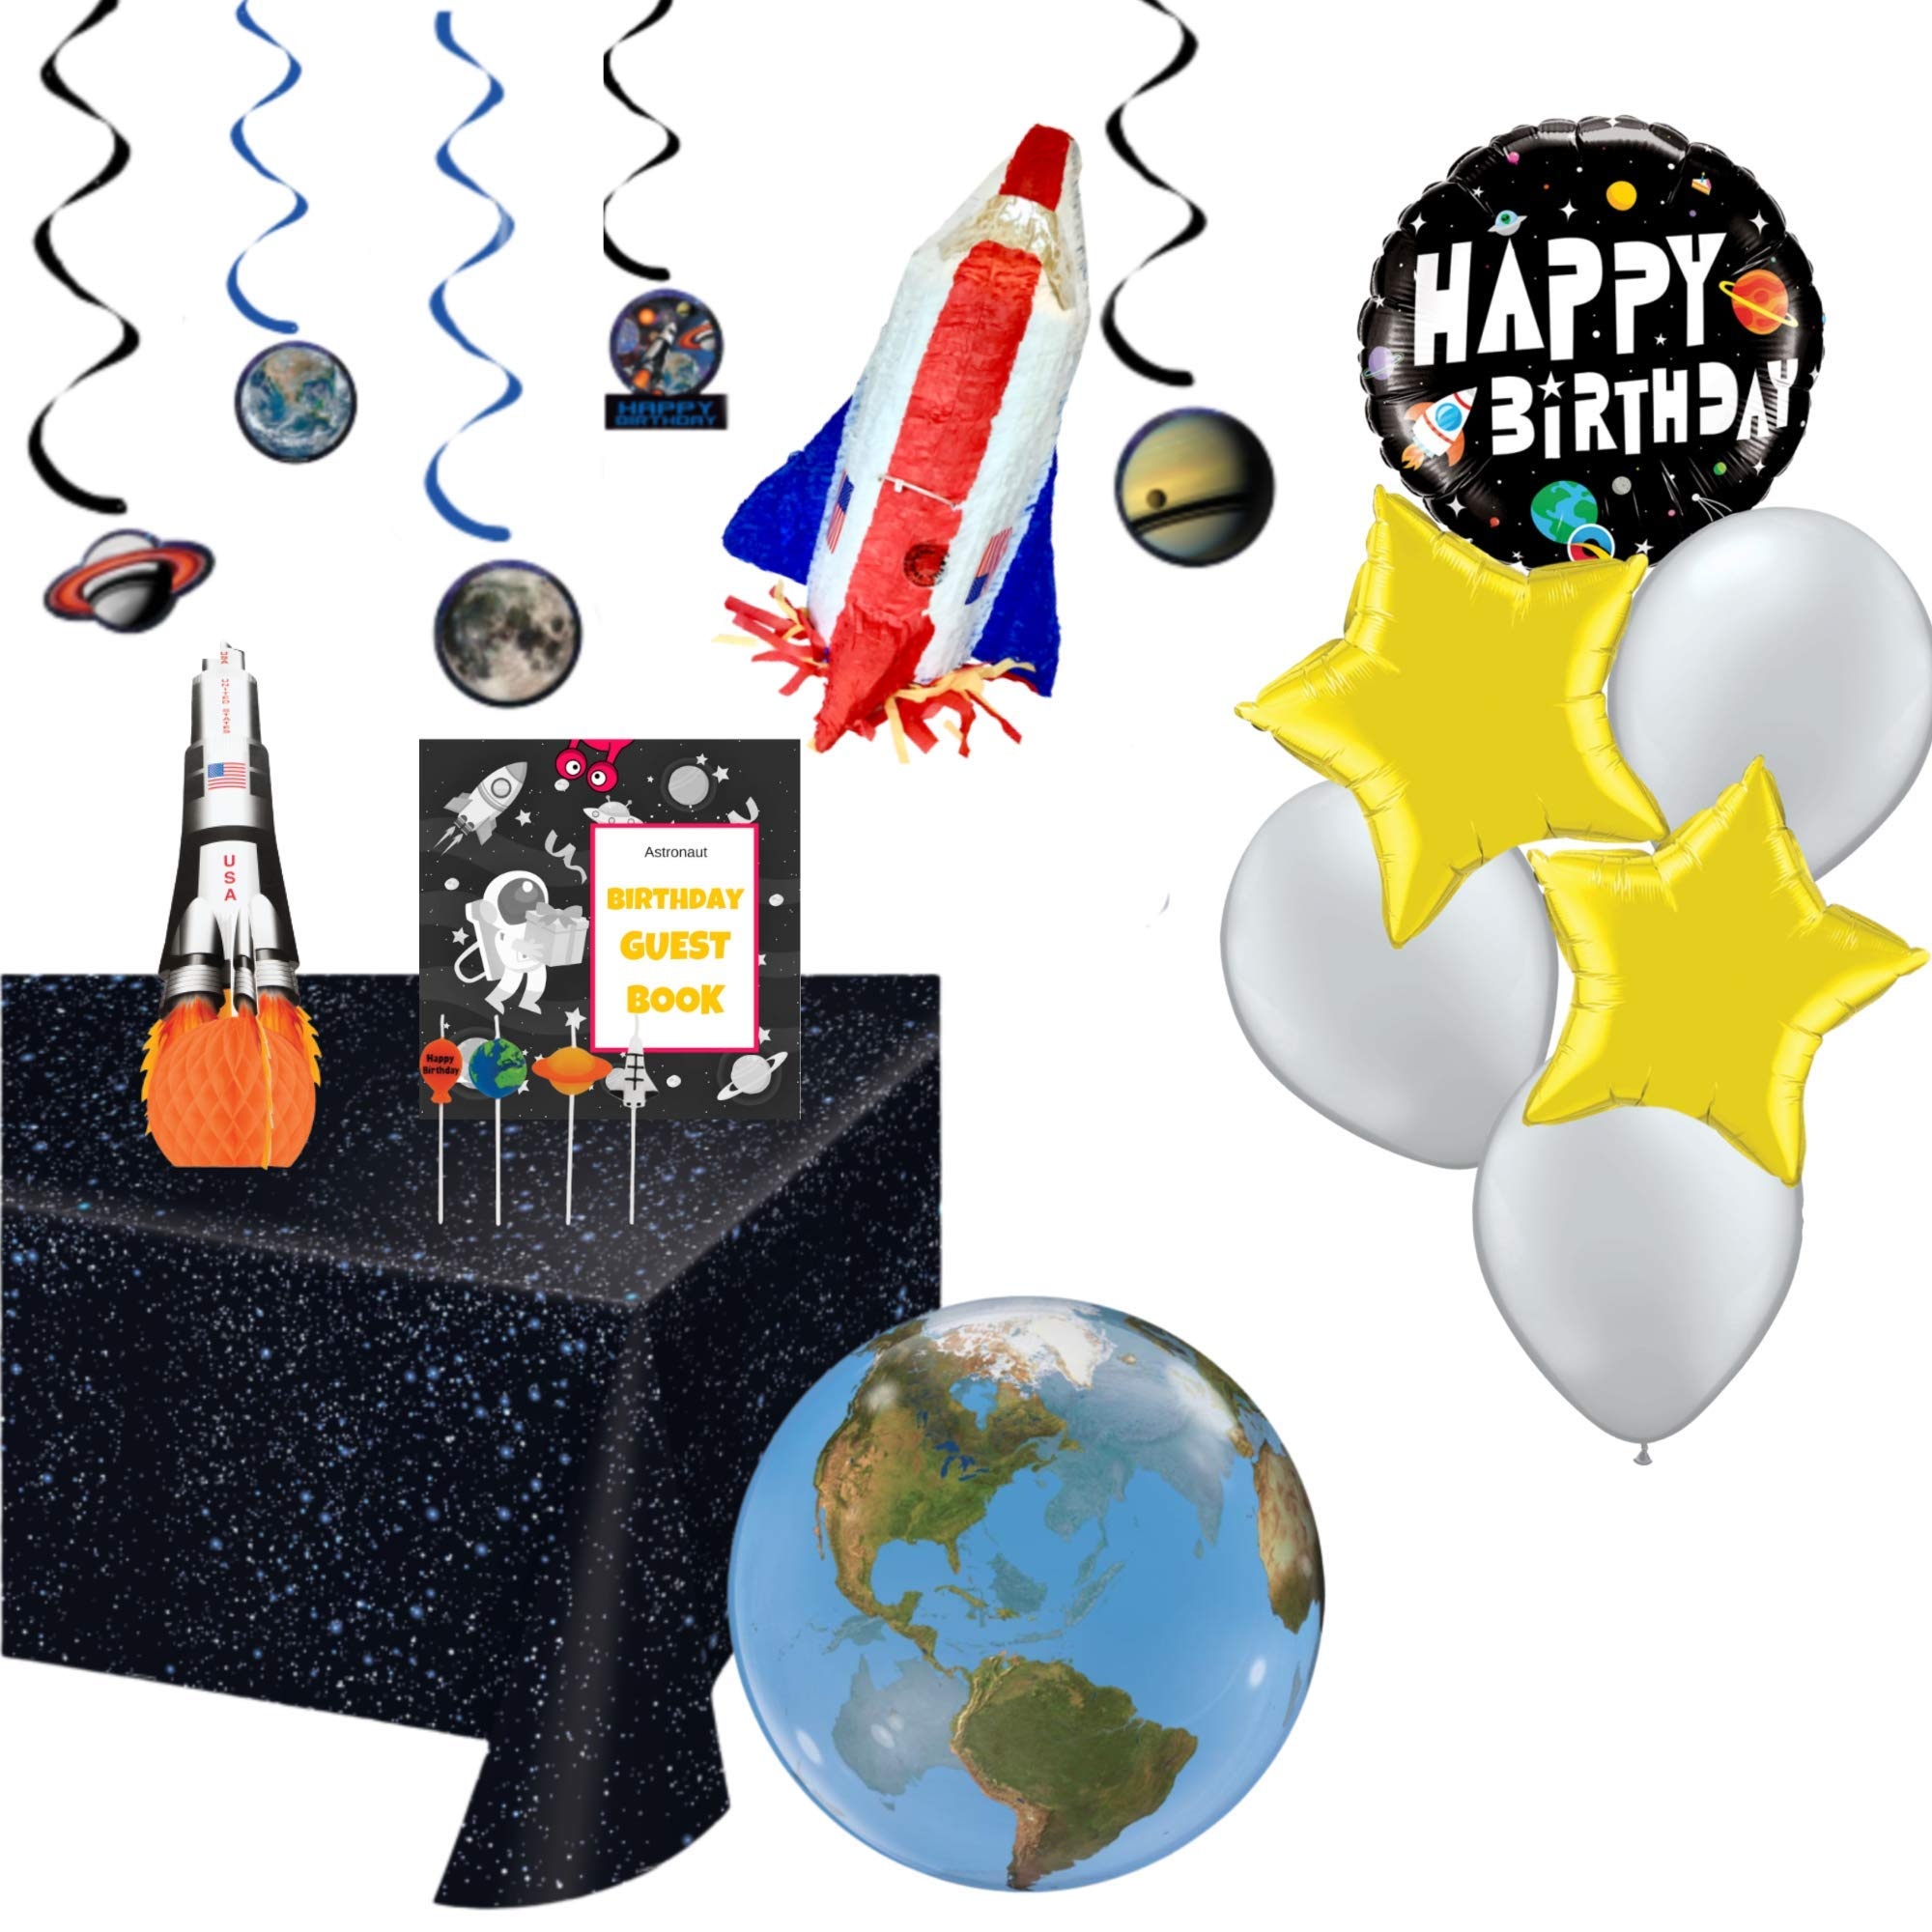 Space Party Supplies: pinata, tablecloth, candles, planet swirls, balloons, centerpiece, guest book